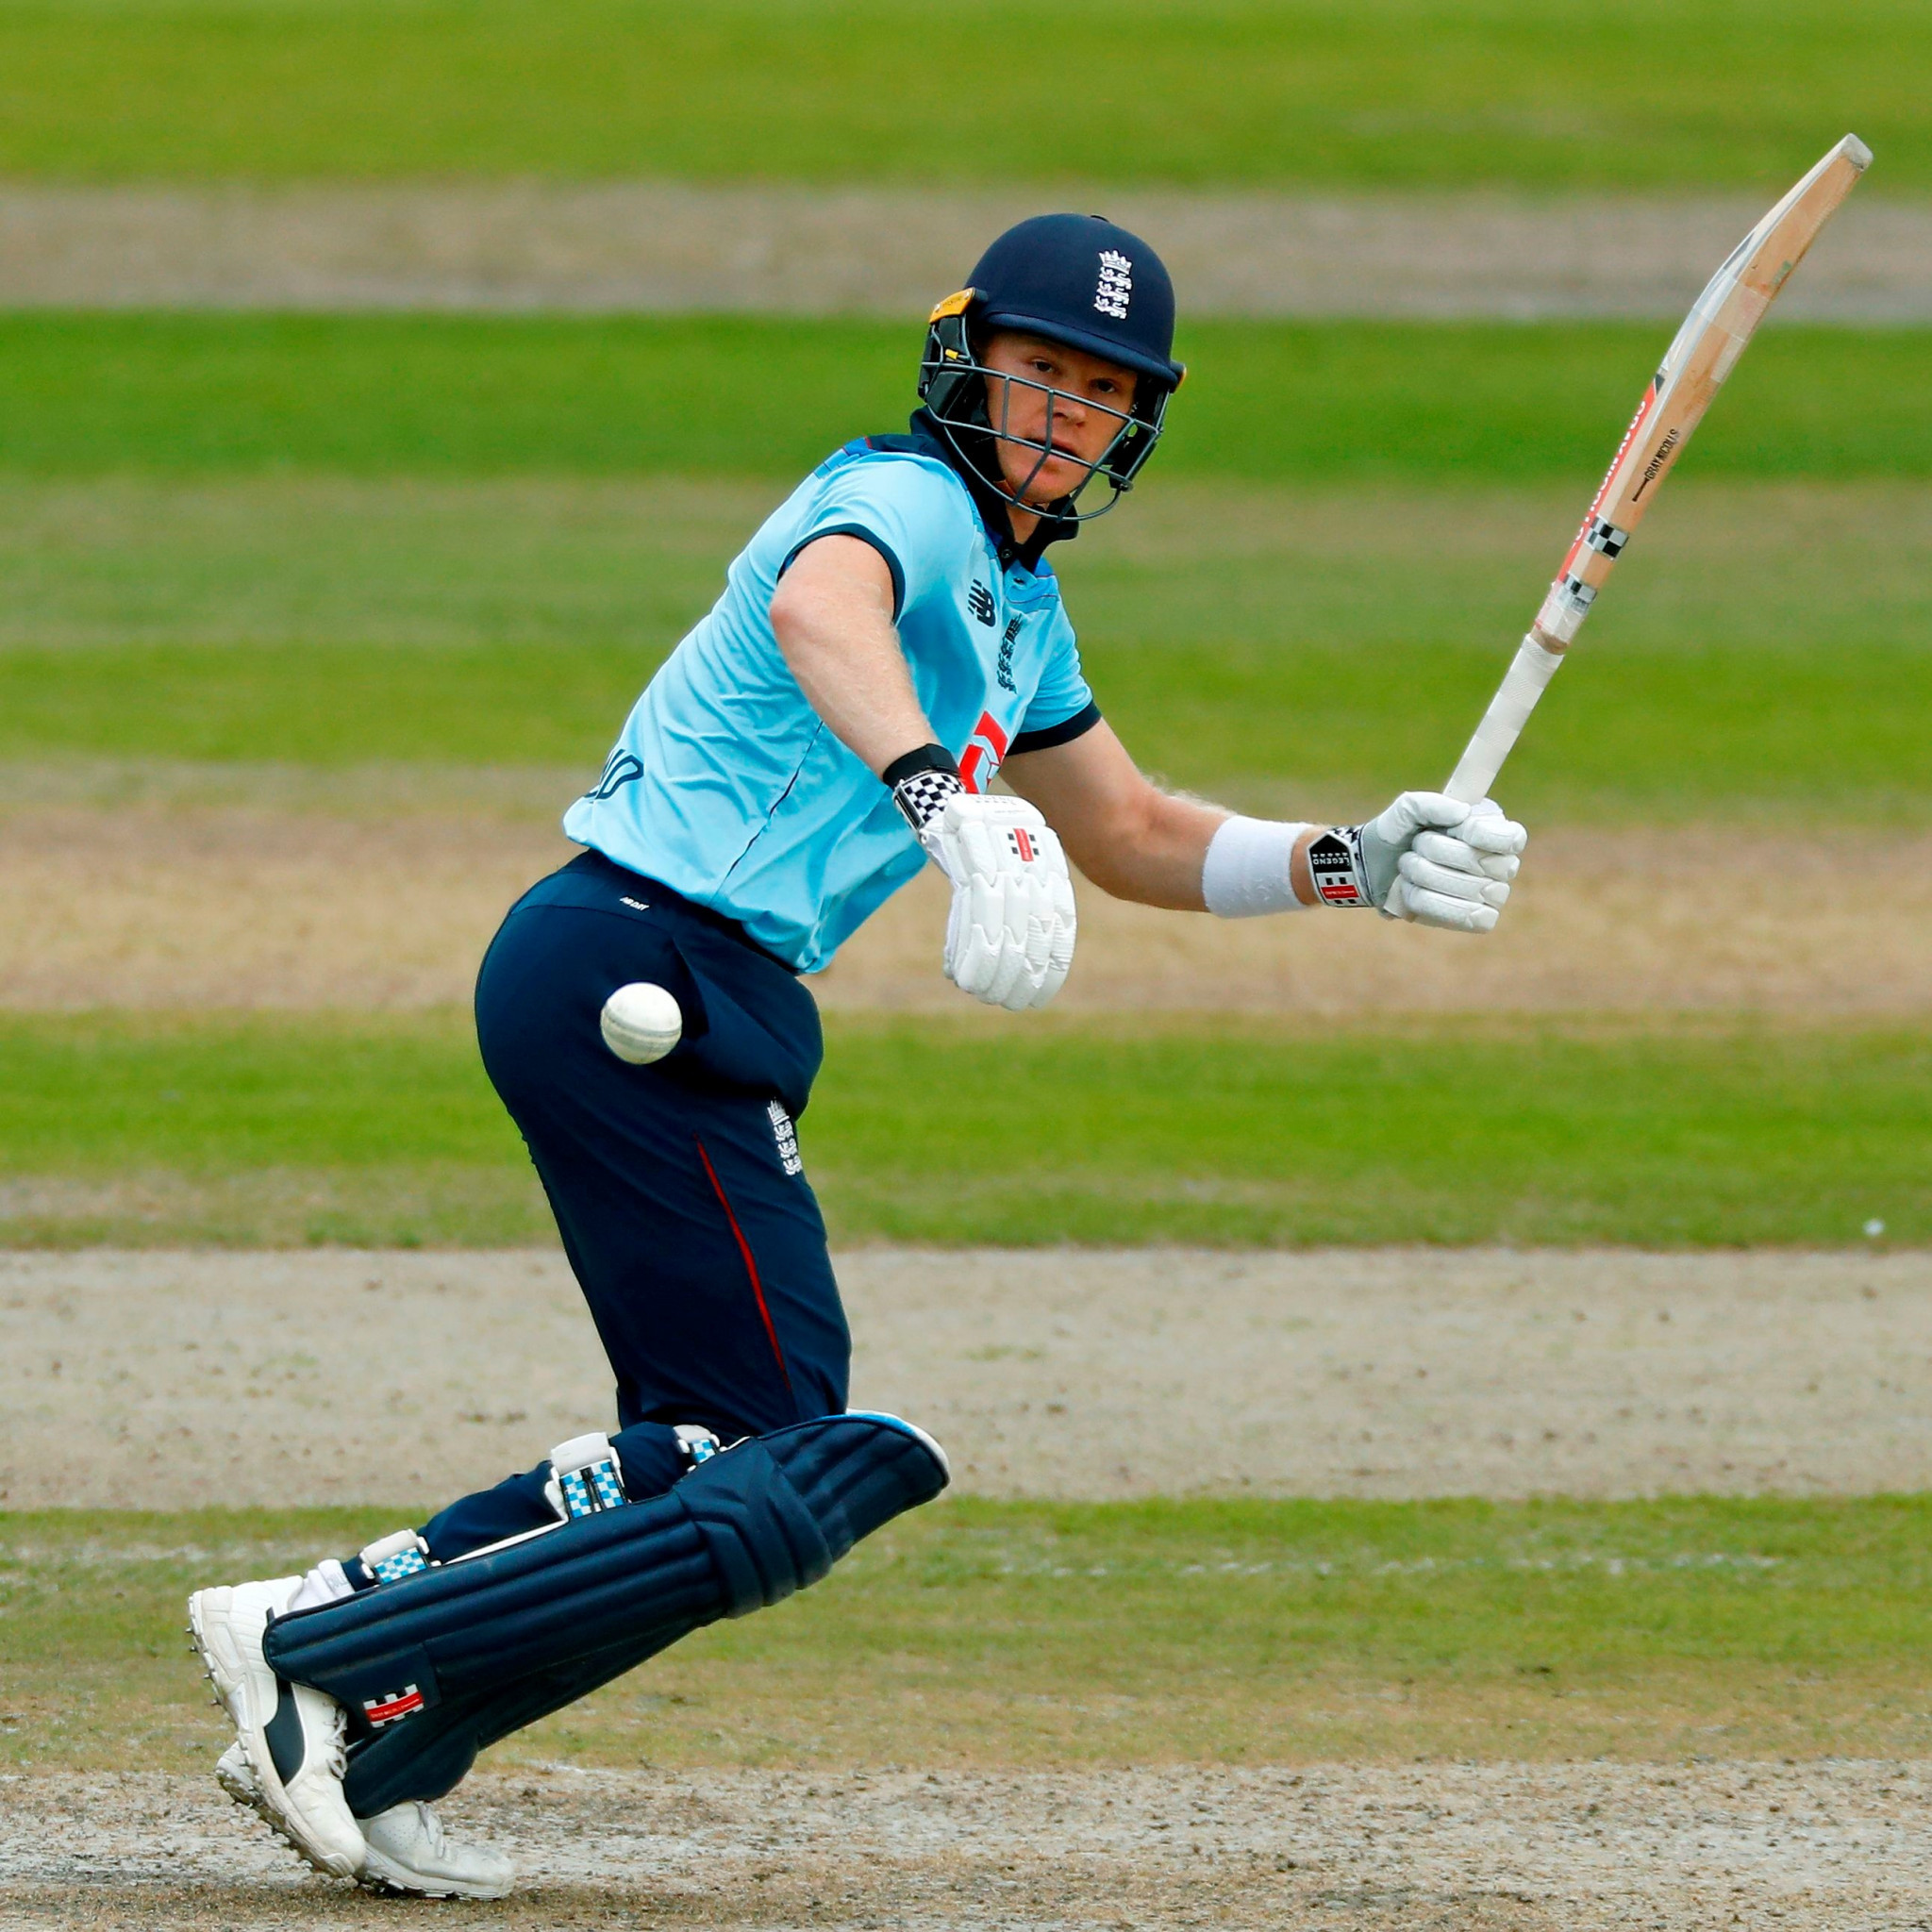 England cricket tour of The Netherlands delayed by a year over COVID-19 uncertainty